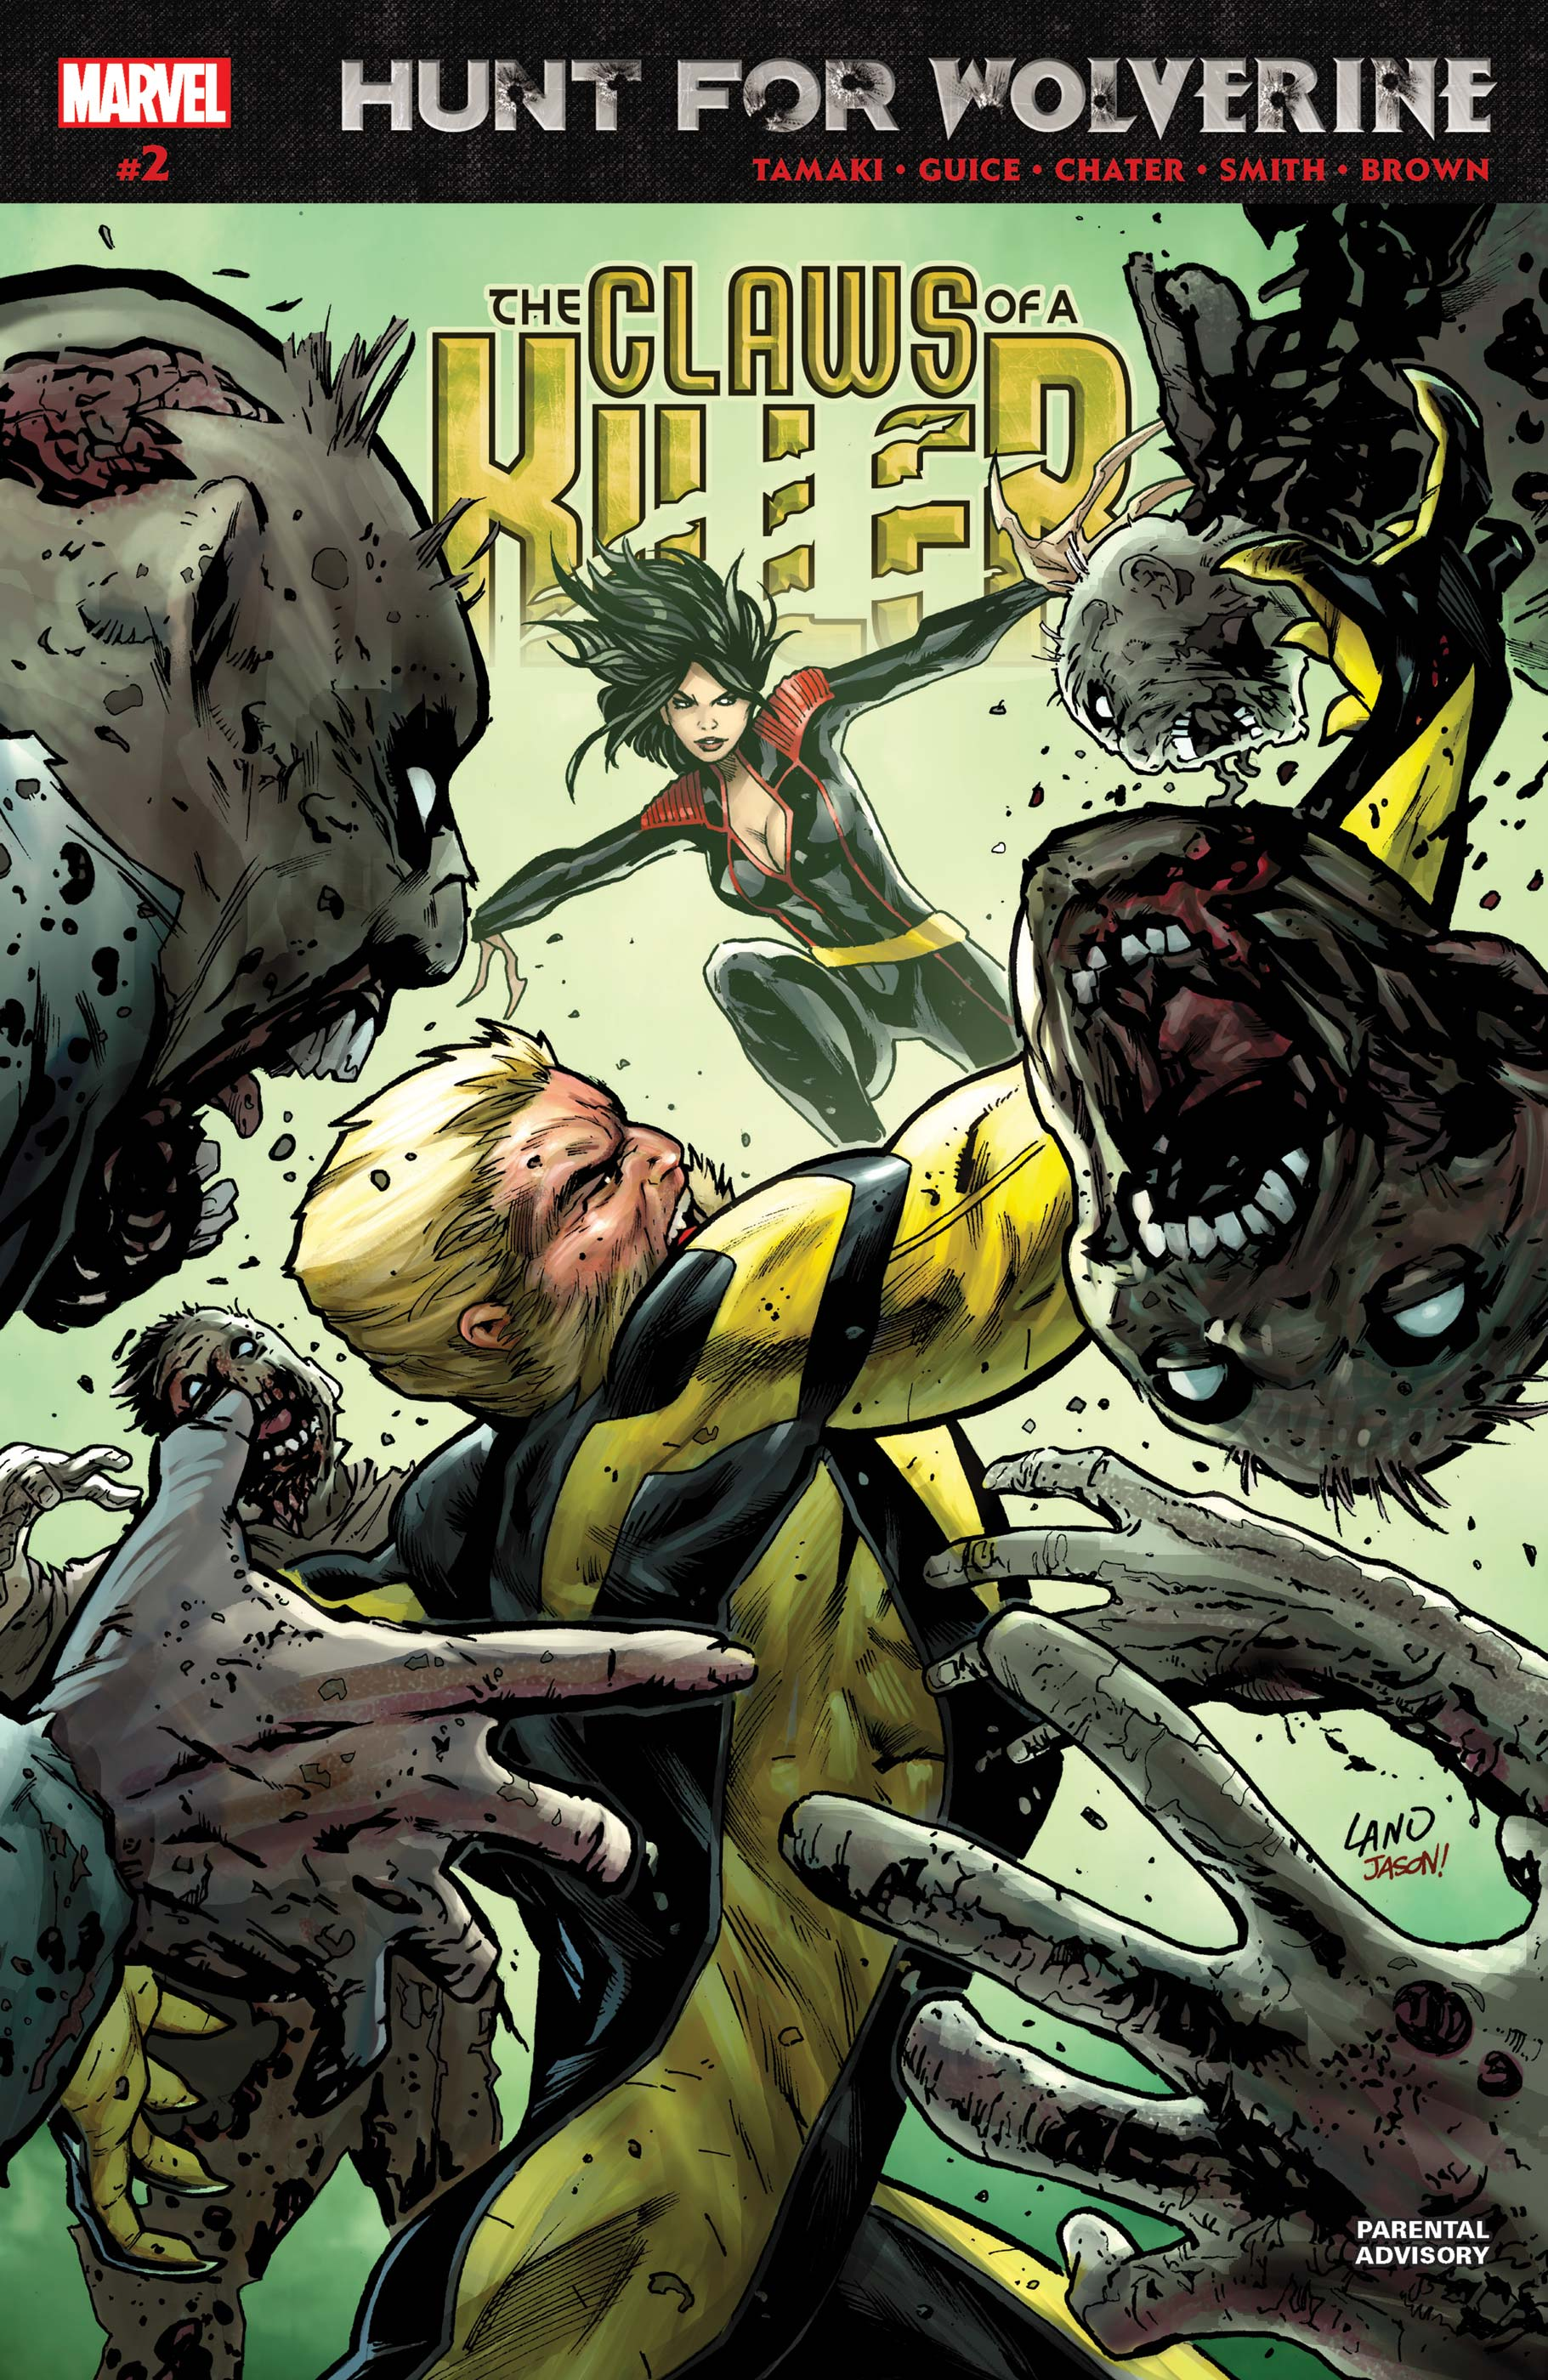 Hunt for Wolverine: Claws of a Killer (2018) #2